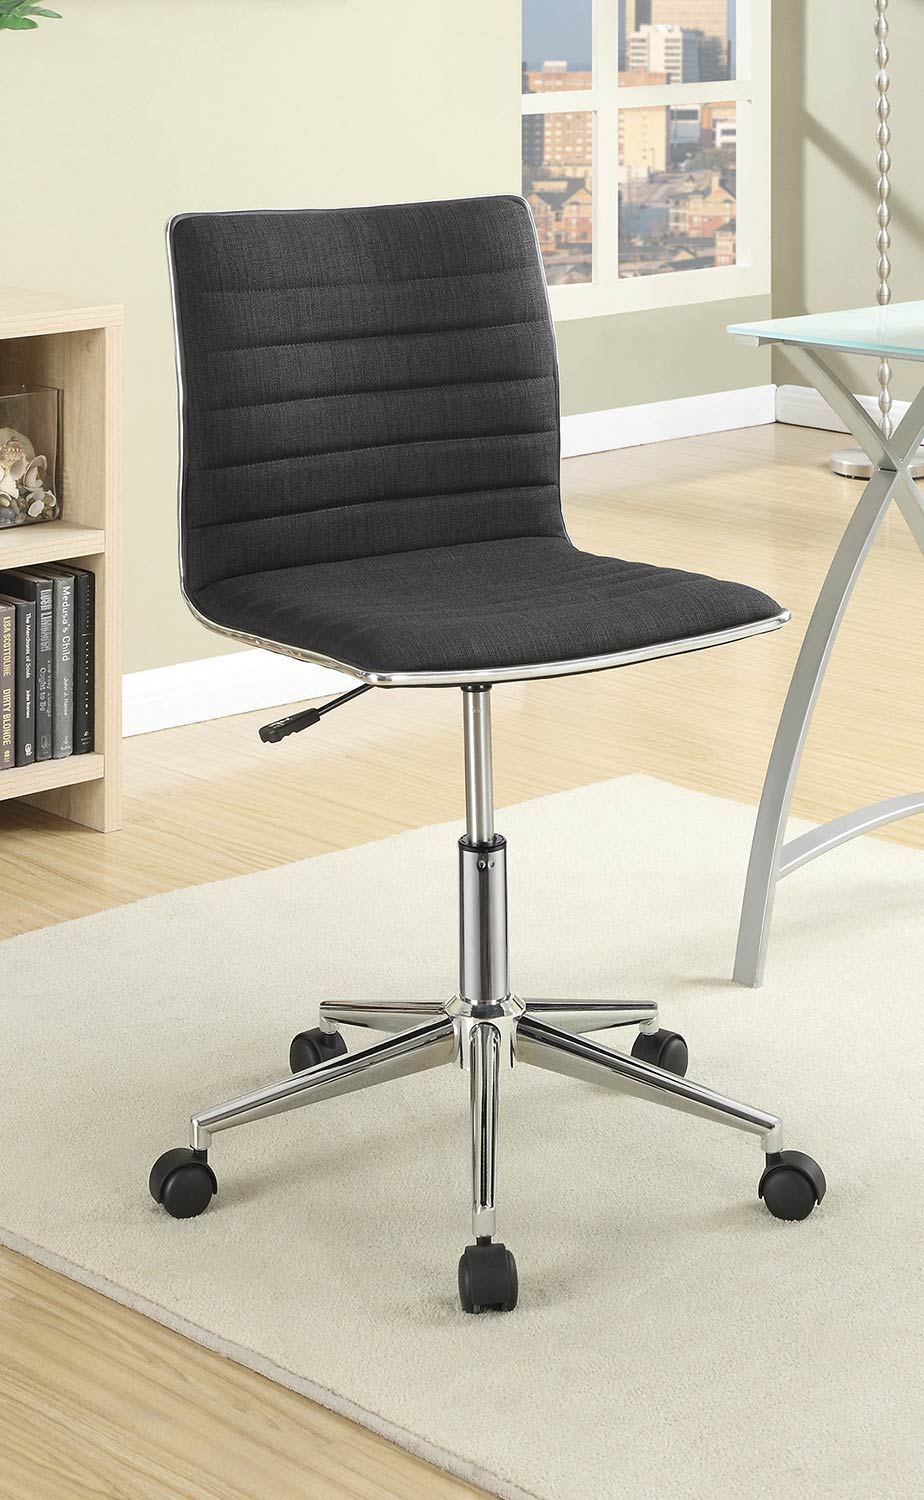 Coaster 800725 Office Chair - Black